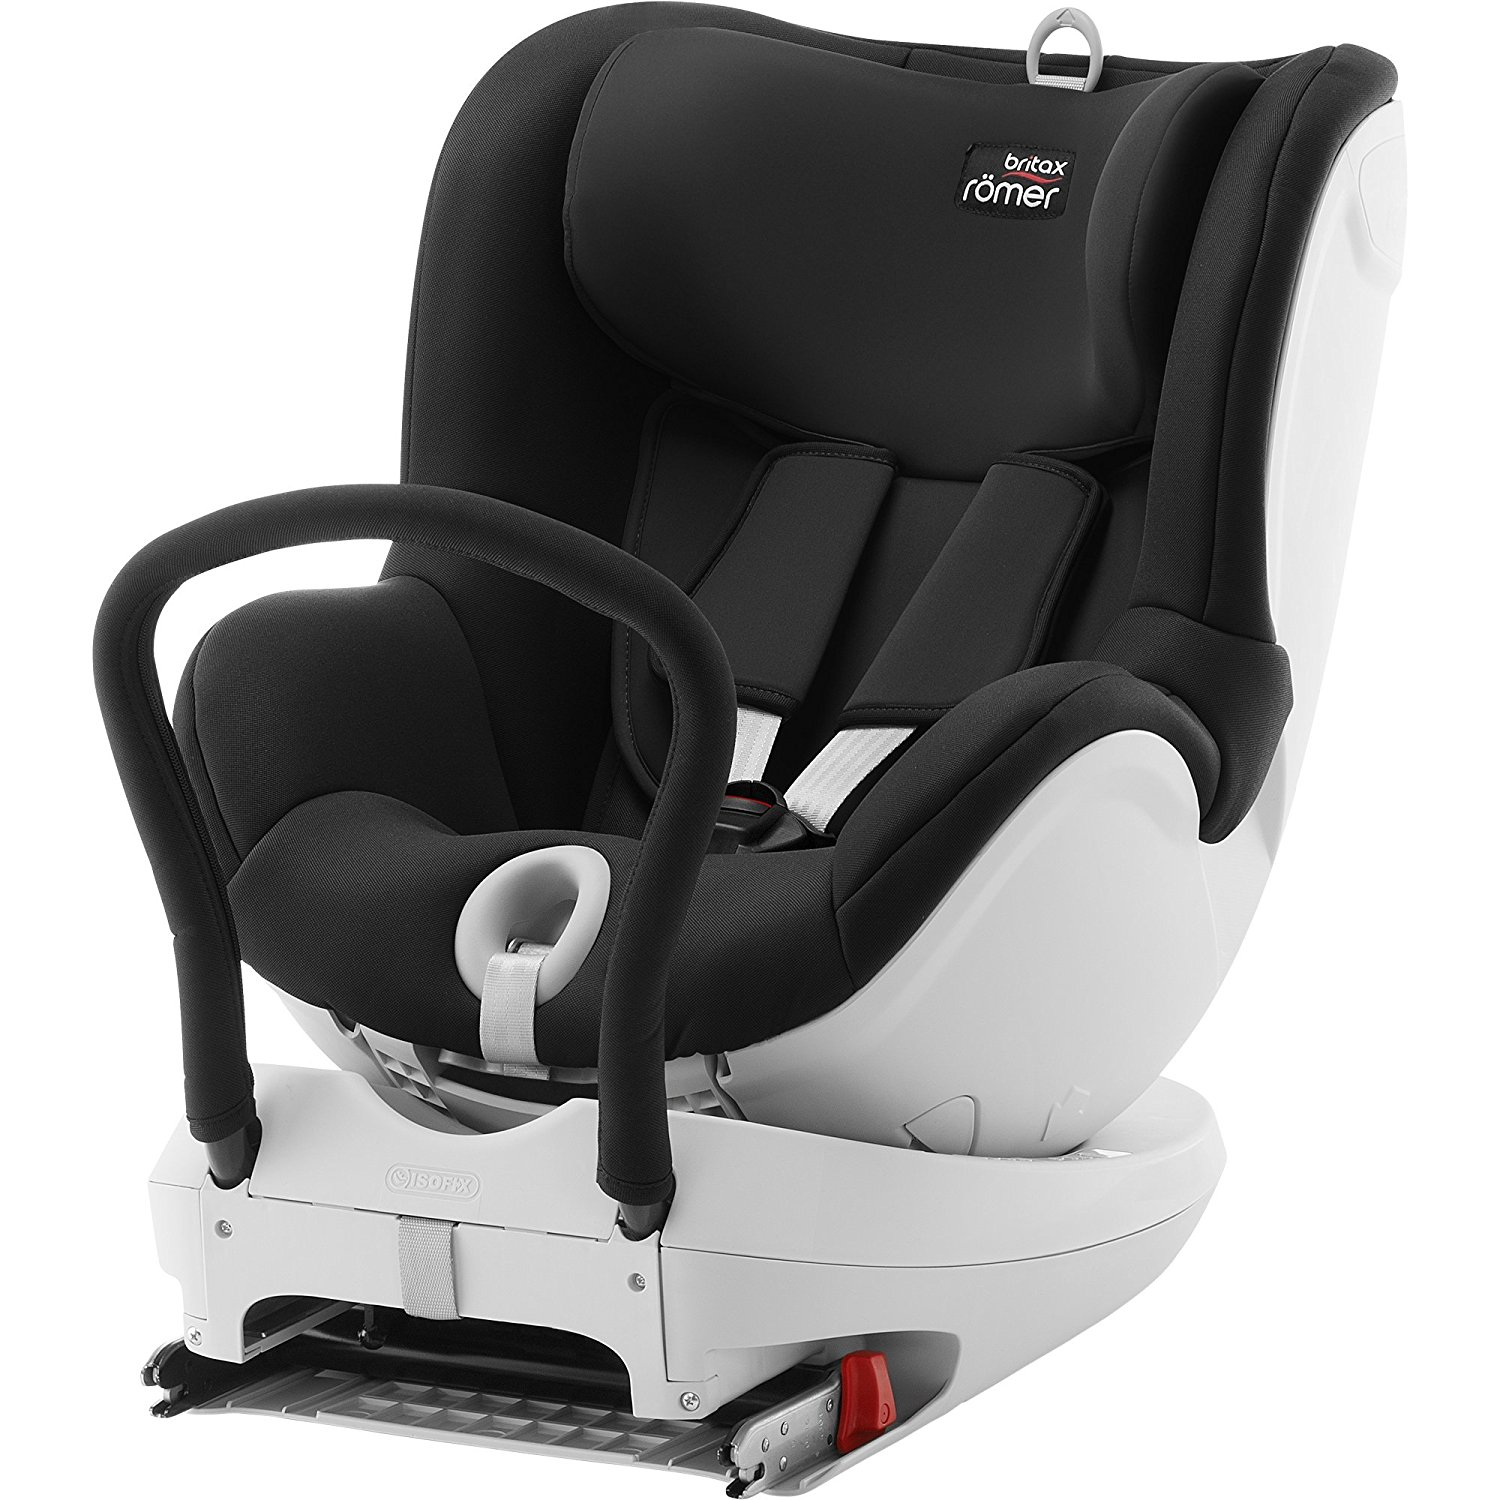 britax romer dual fix car seat group 0 1 cosmos black for ages 0 4 years ebay. Black Bedroom Furniture Sets. Home Design Ideas